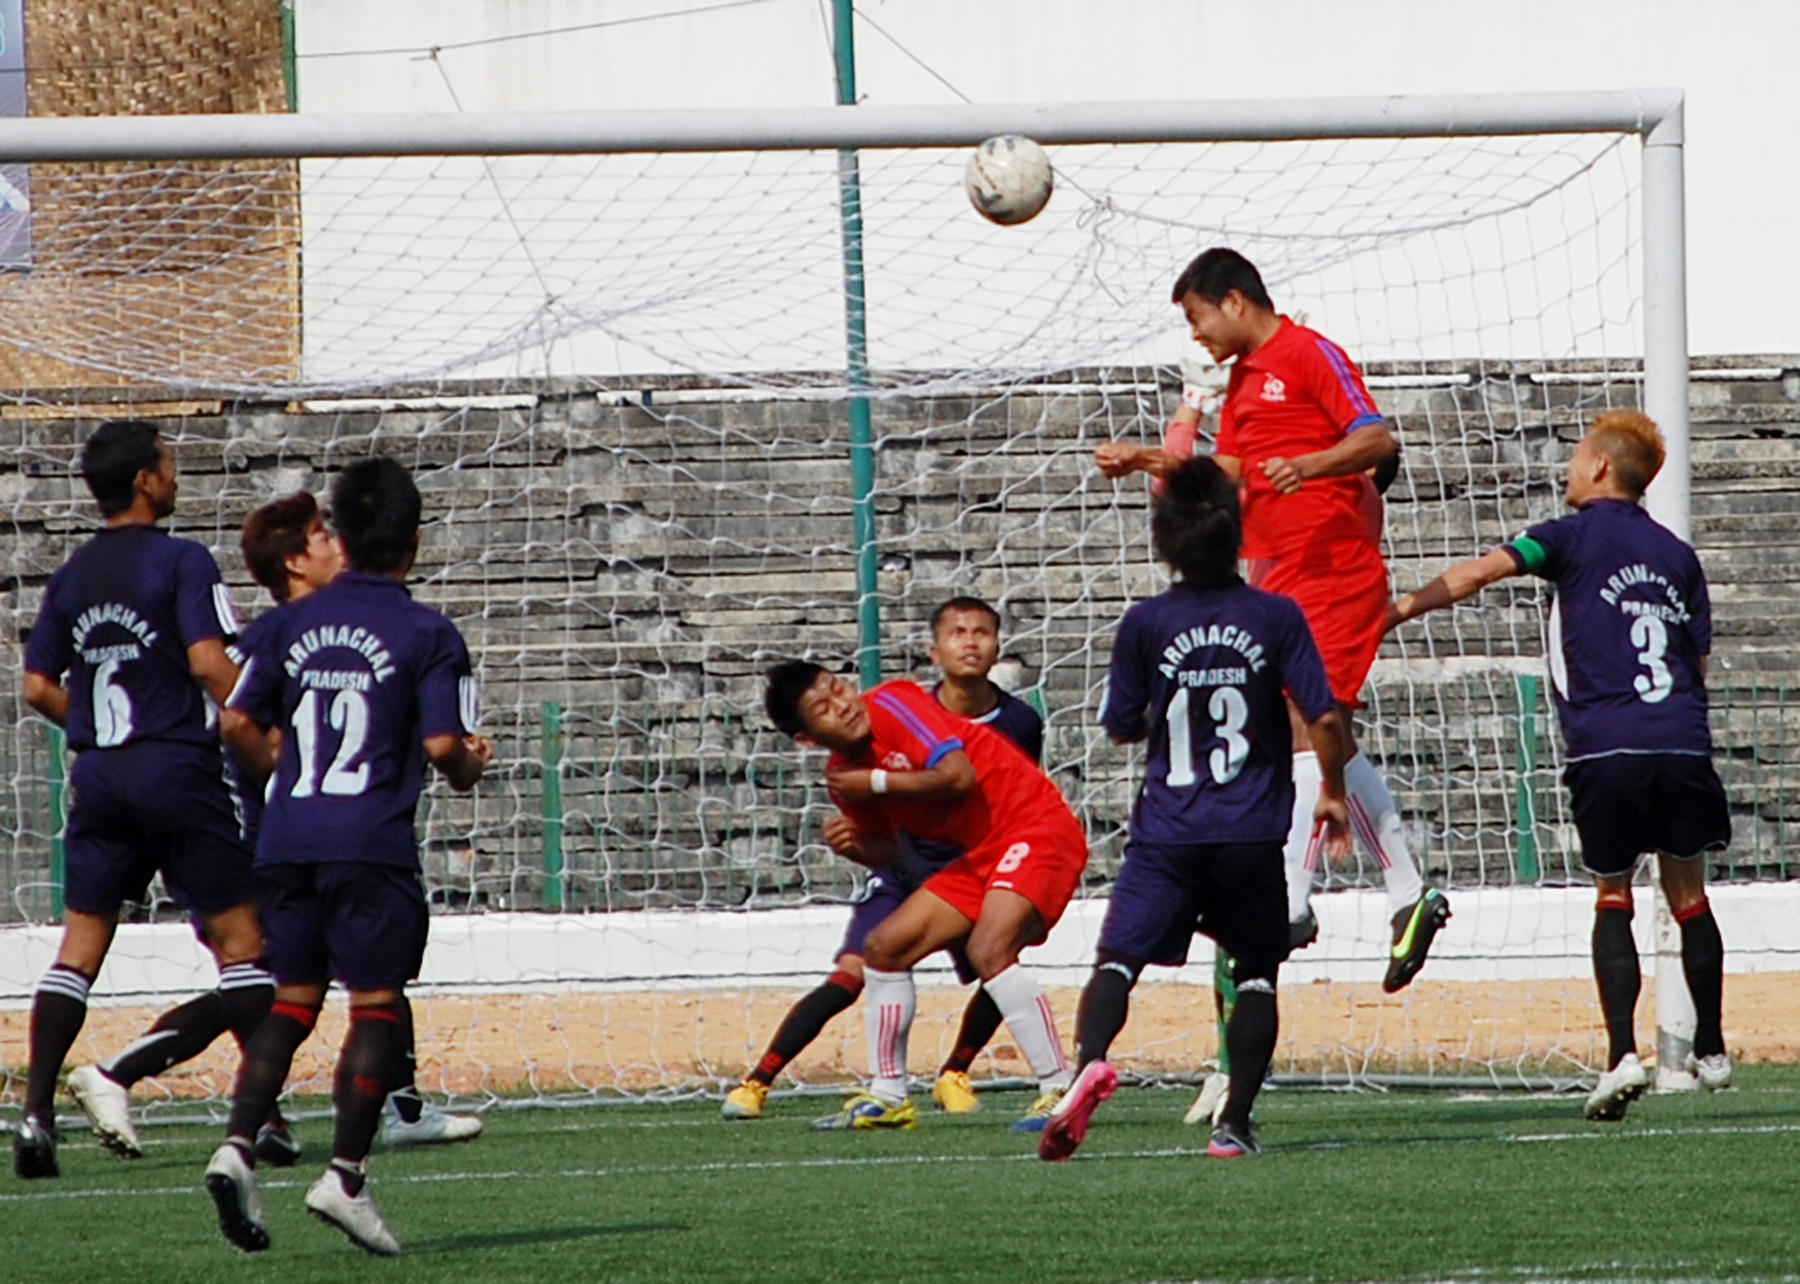 Mizoram (red jersey) Vs Arunachal Pradesh in the First Semi Final (3)